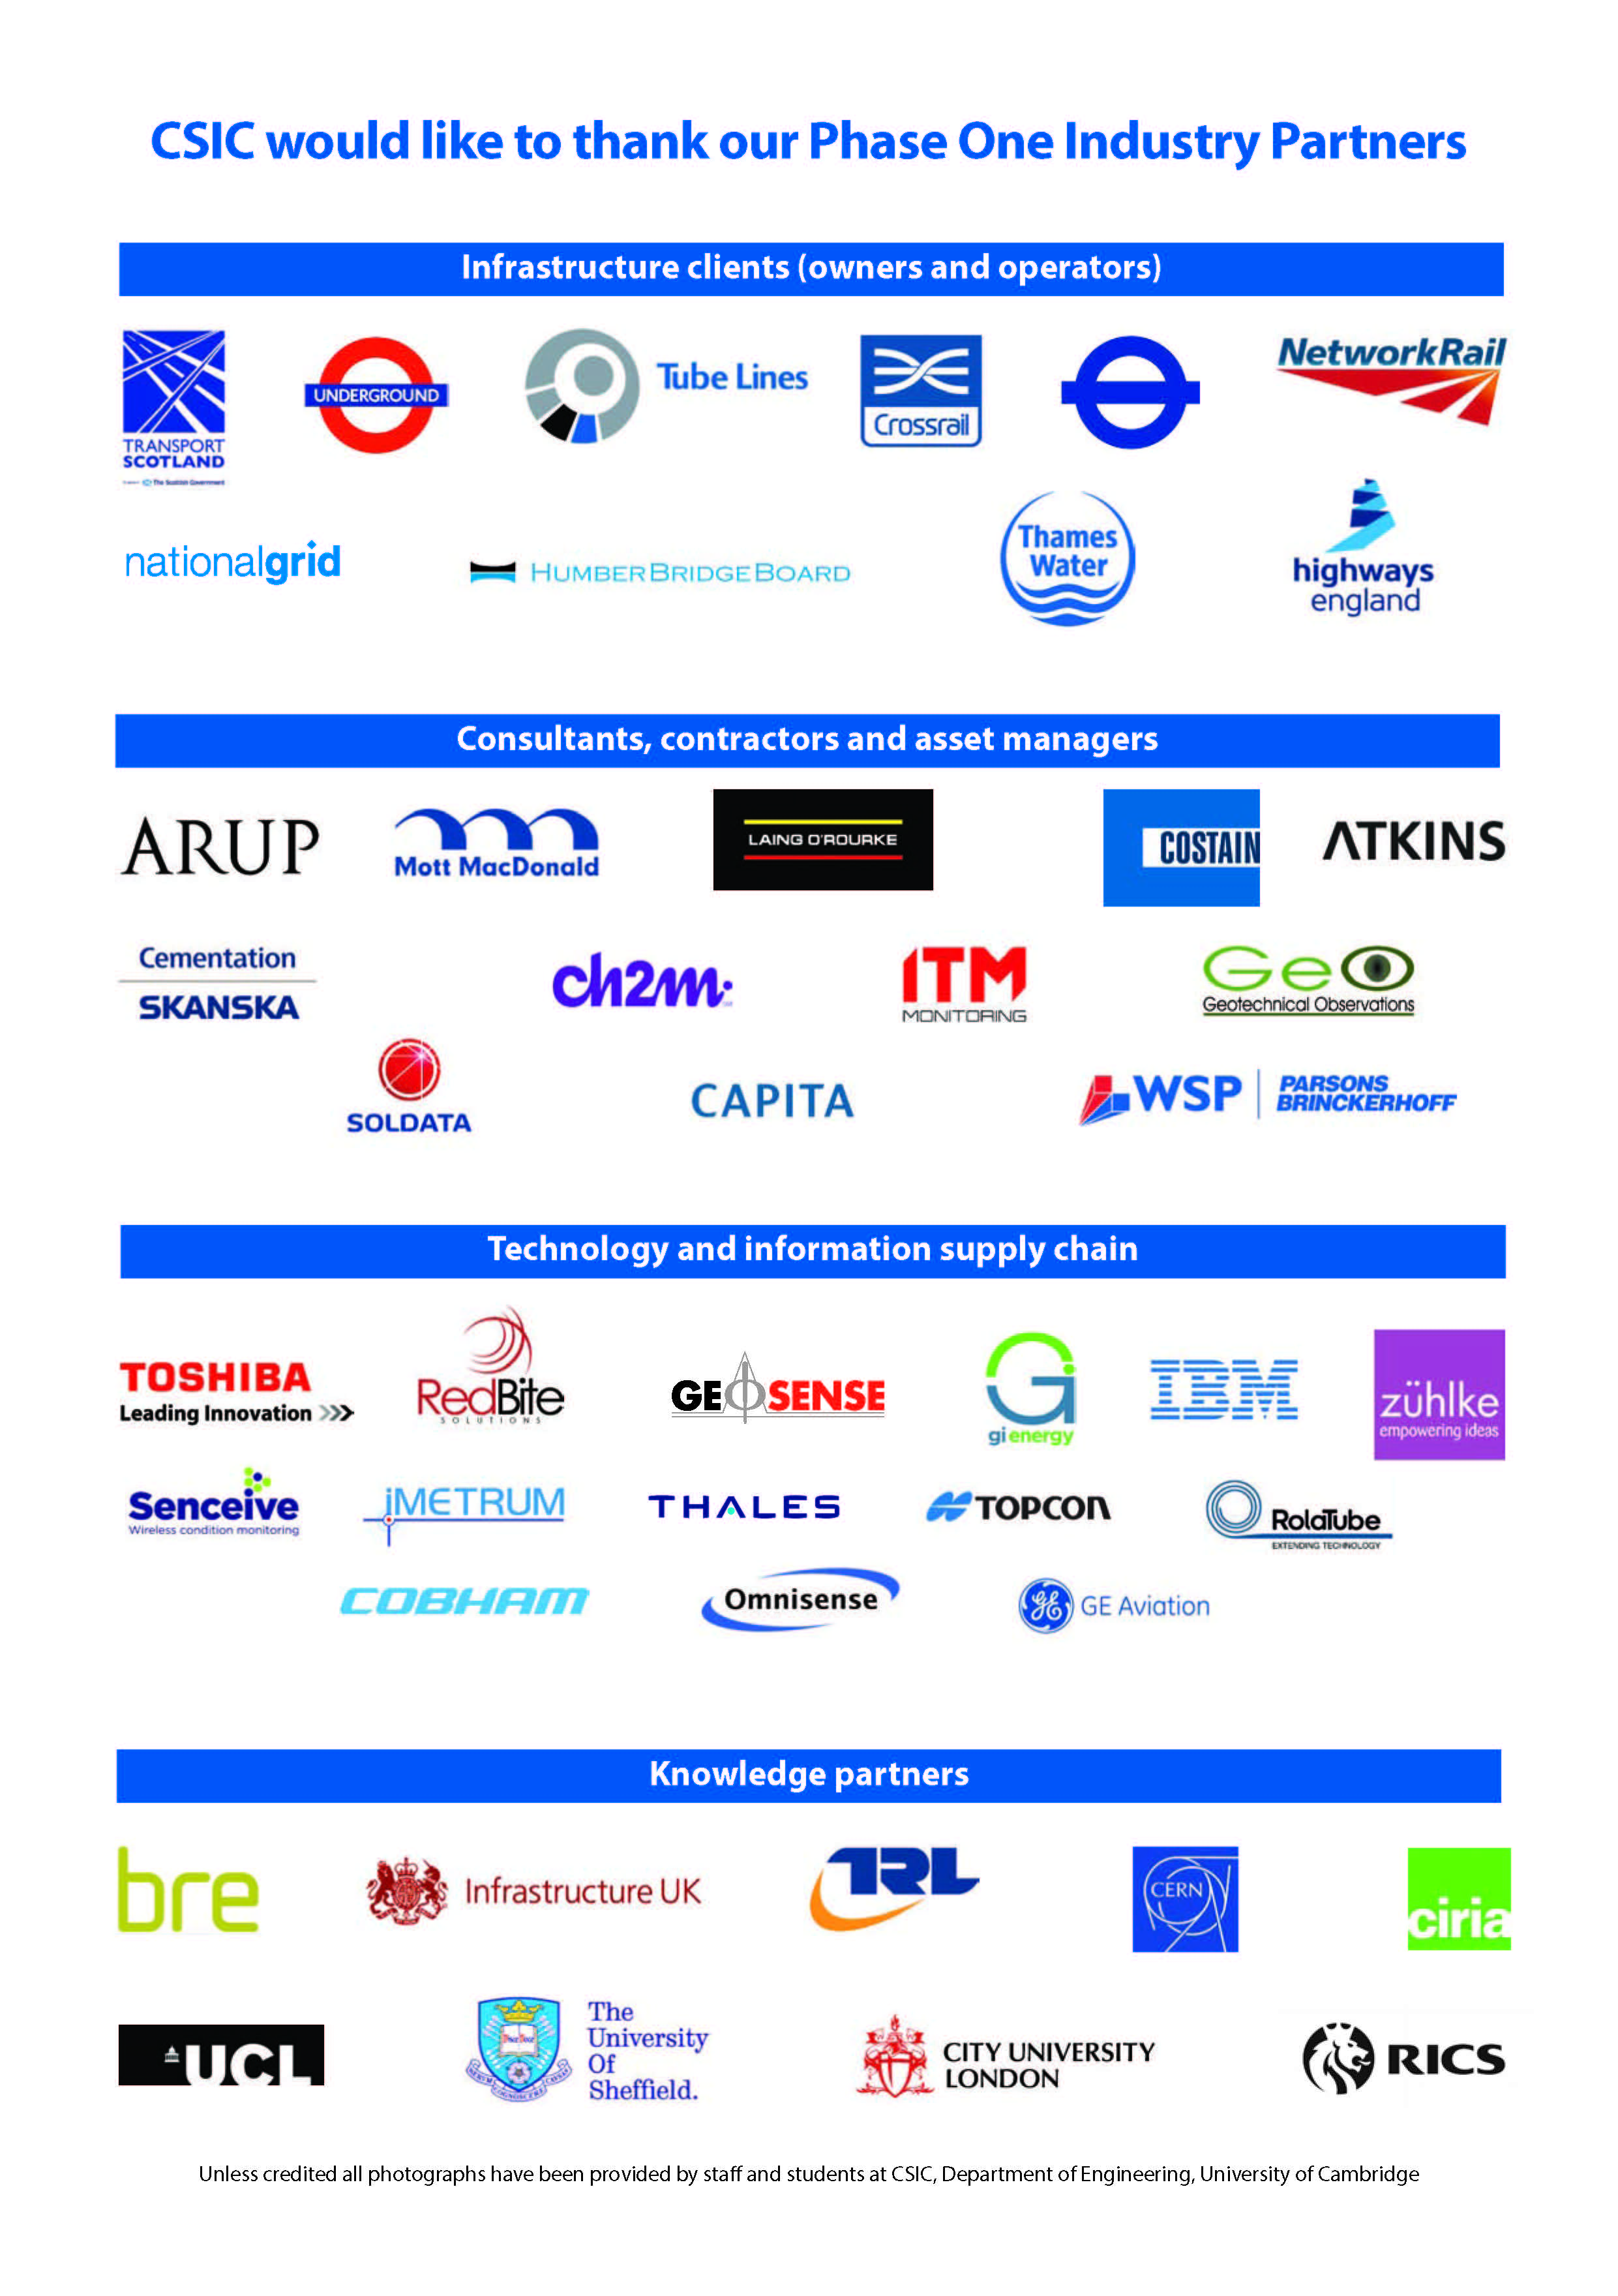 Phase One industry partners image